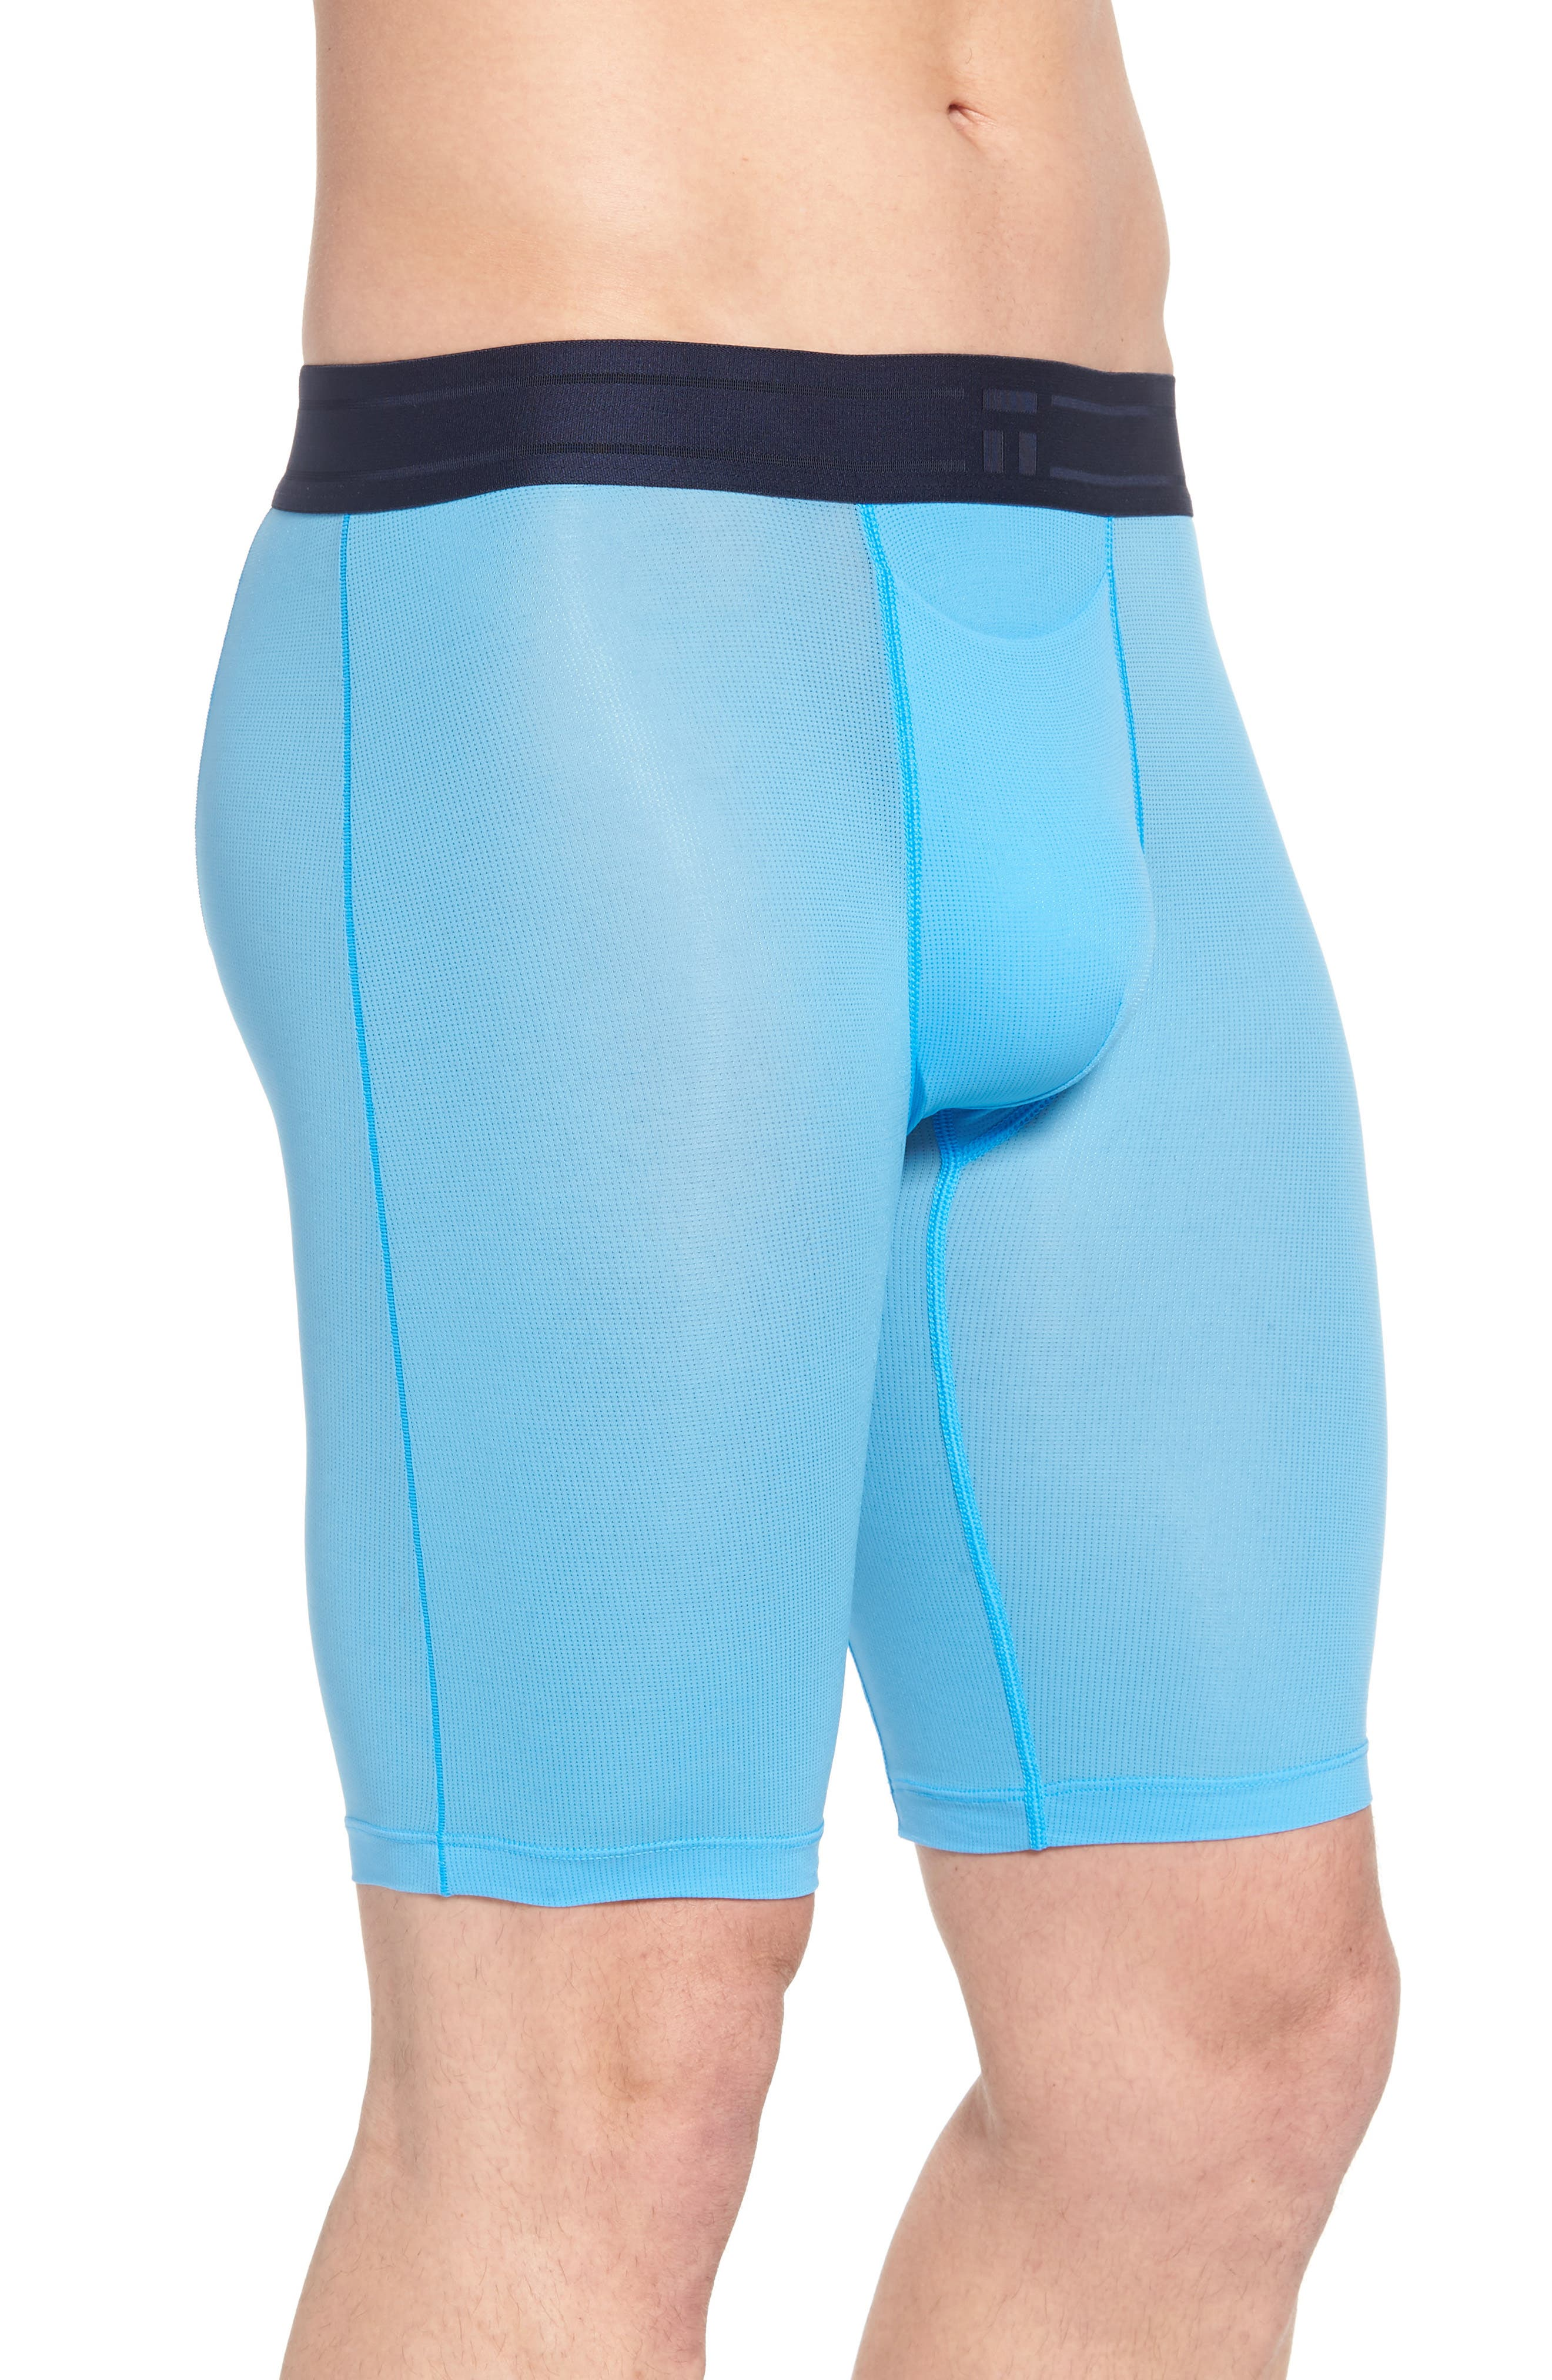 Air Boxer Briefs,                             Alternate thumbnail 3, color,                             Azure